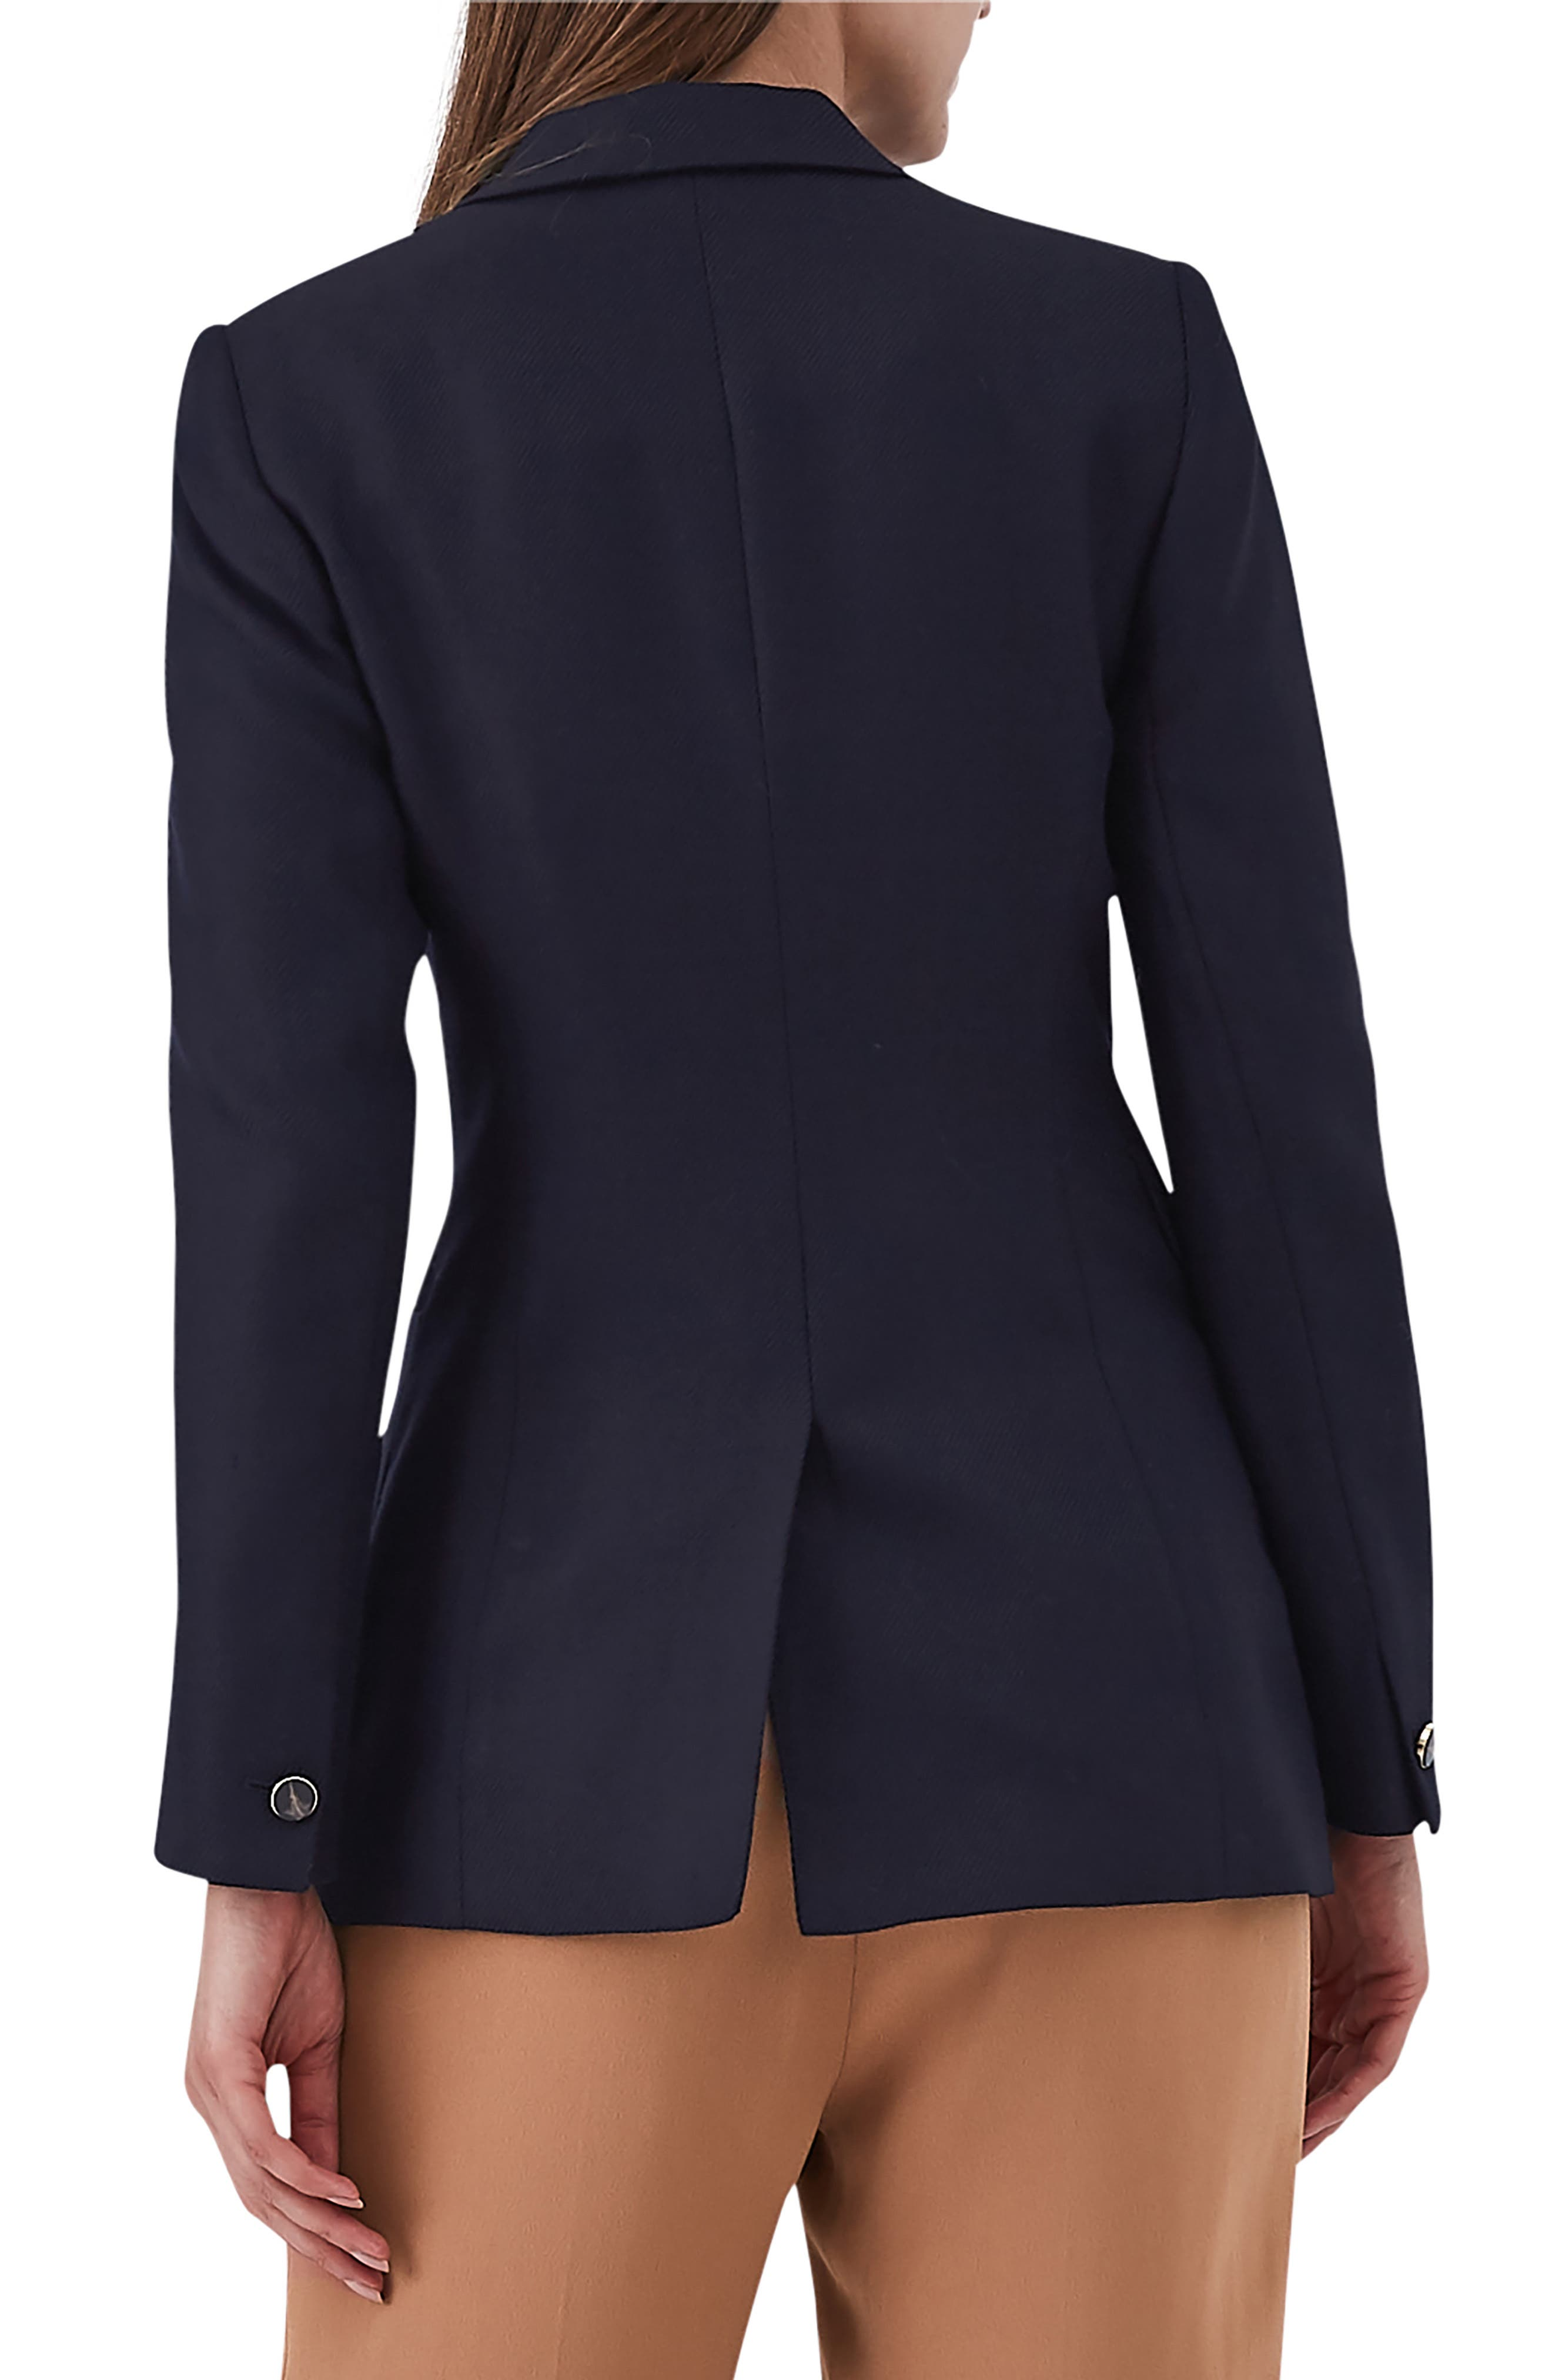 Tate Double Breasted Jacket,                             Alternate thumbnail 2, color,                             NAVY